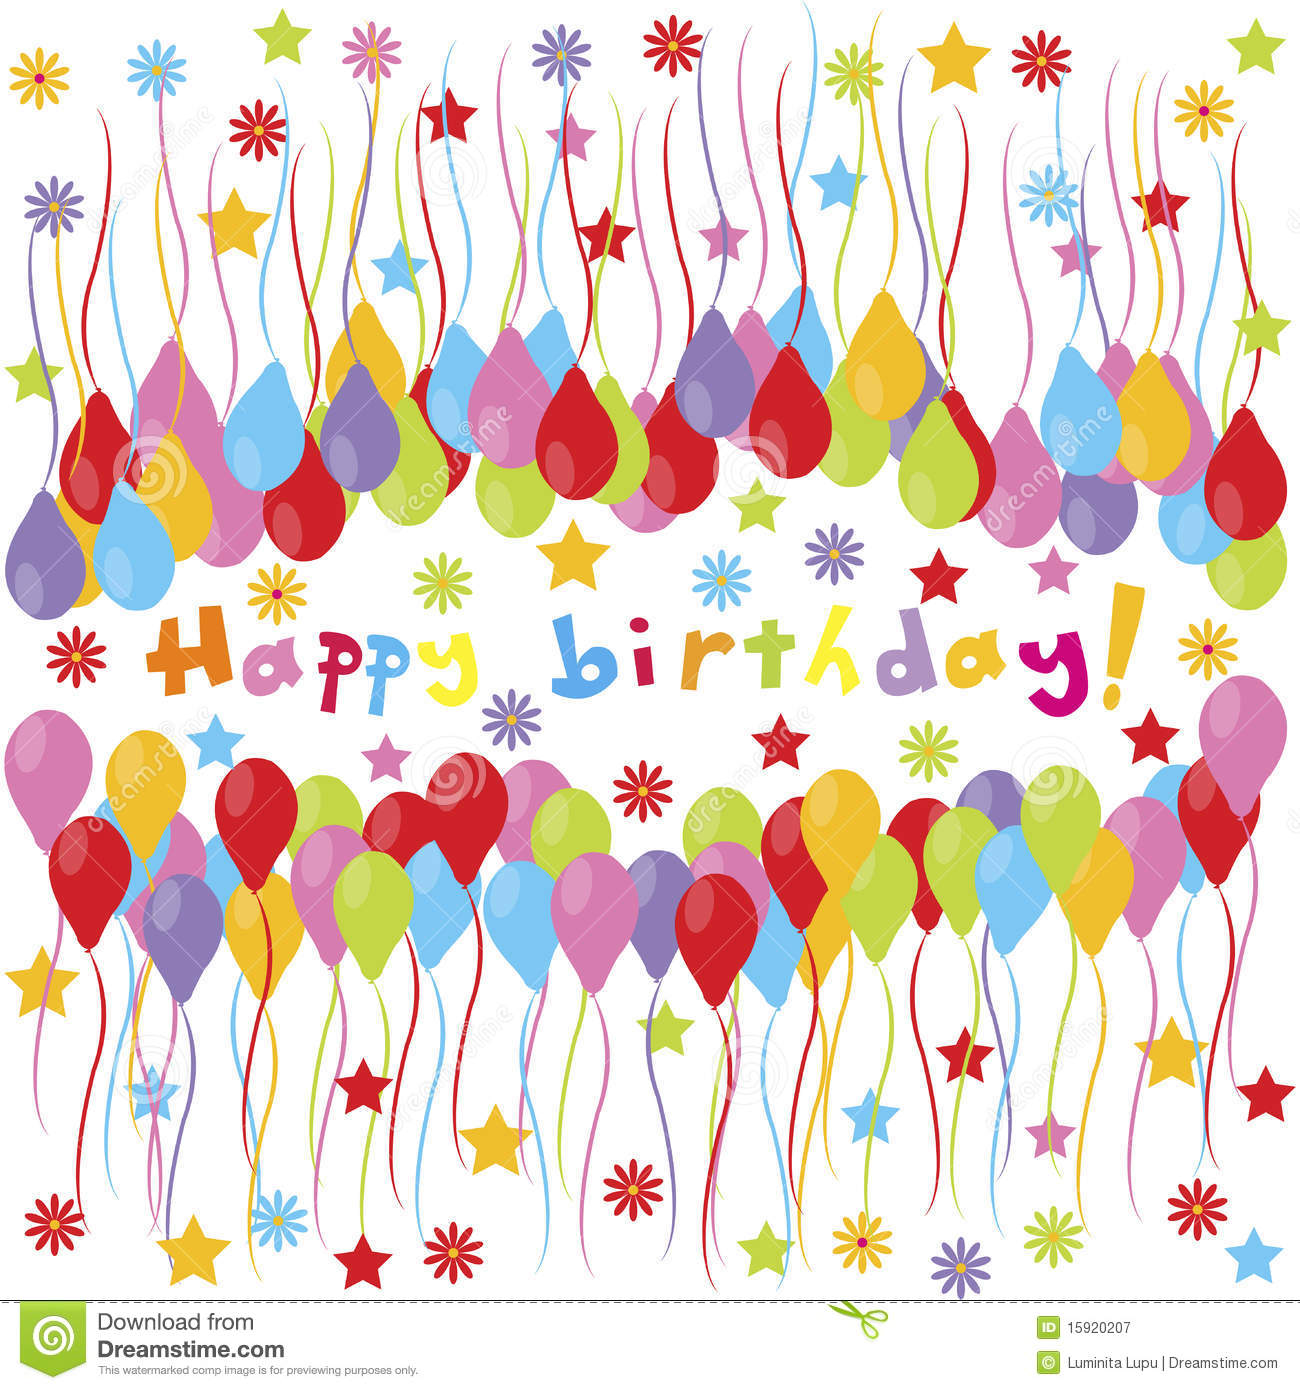 birthday pictures free clip art ; happy-birthday-clipart-animated-1687076